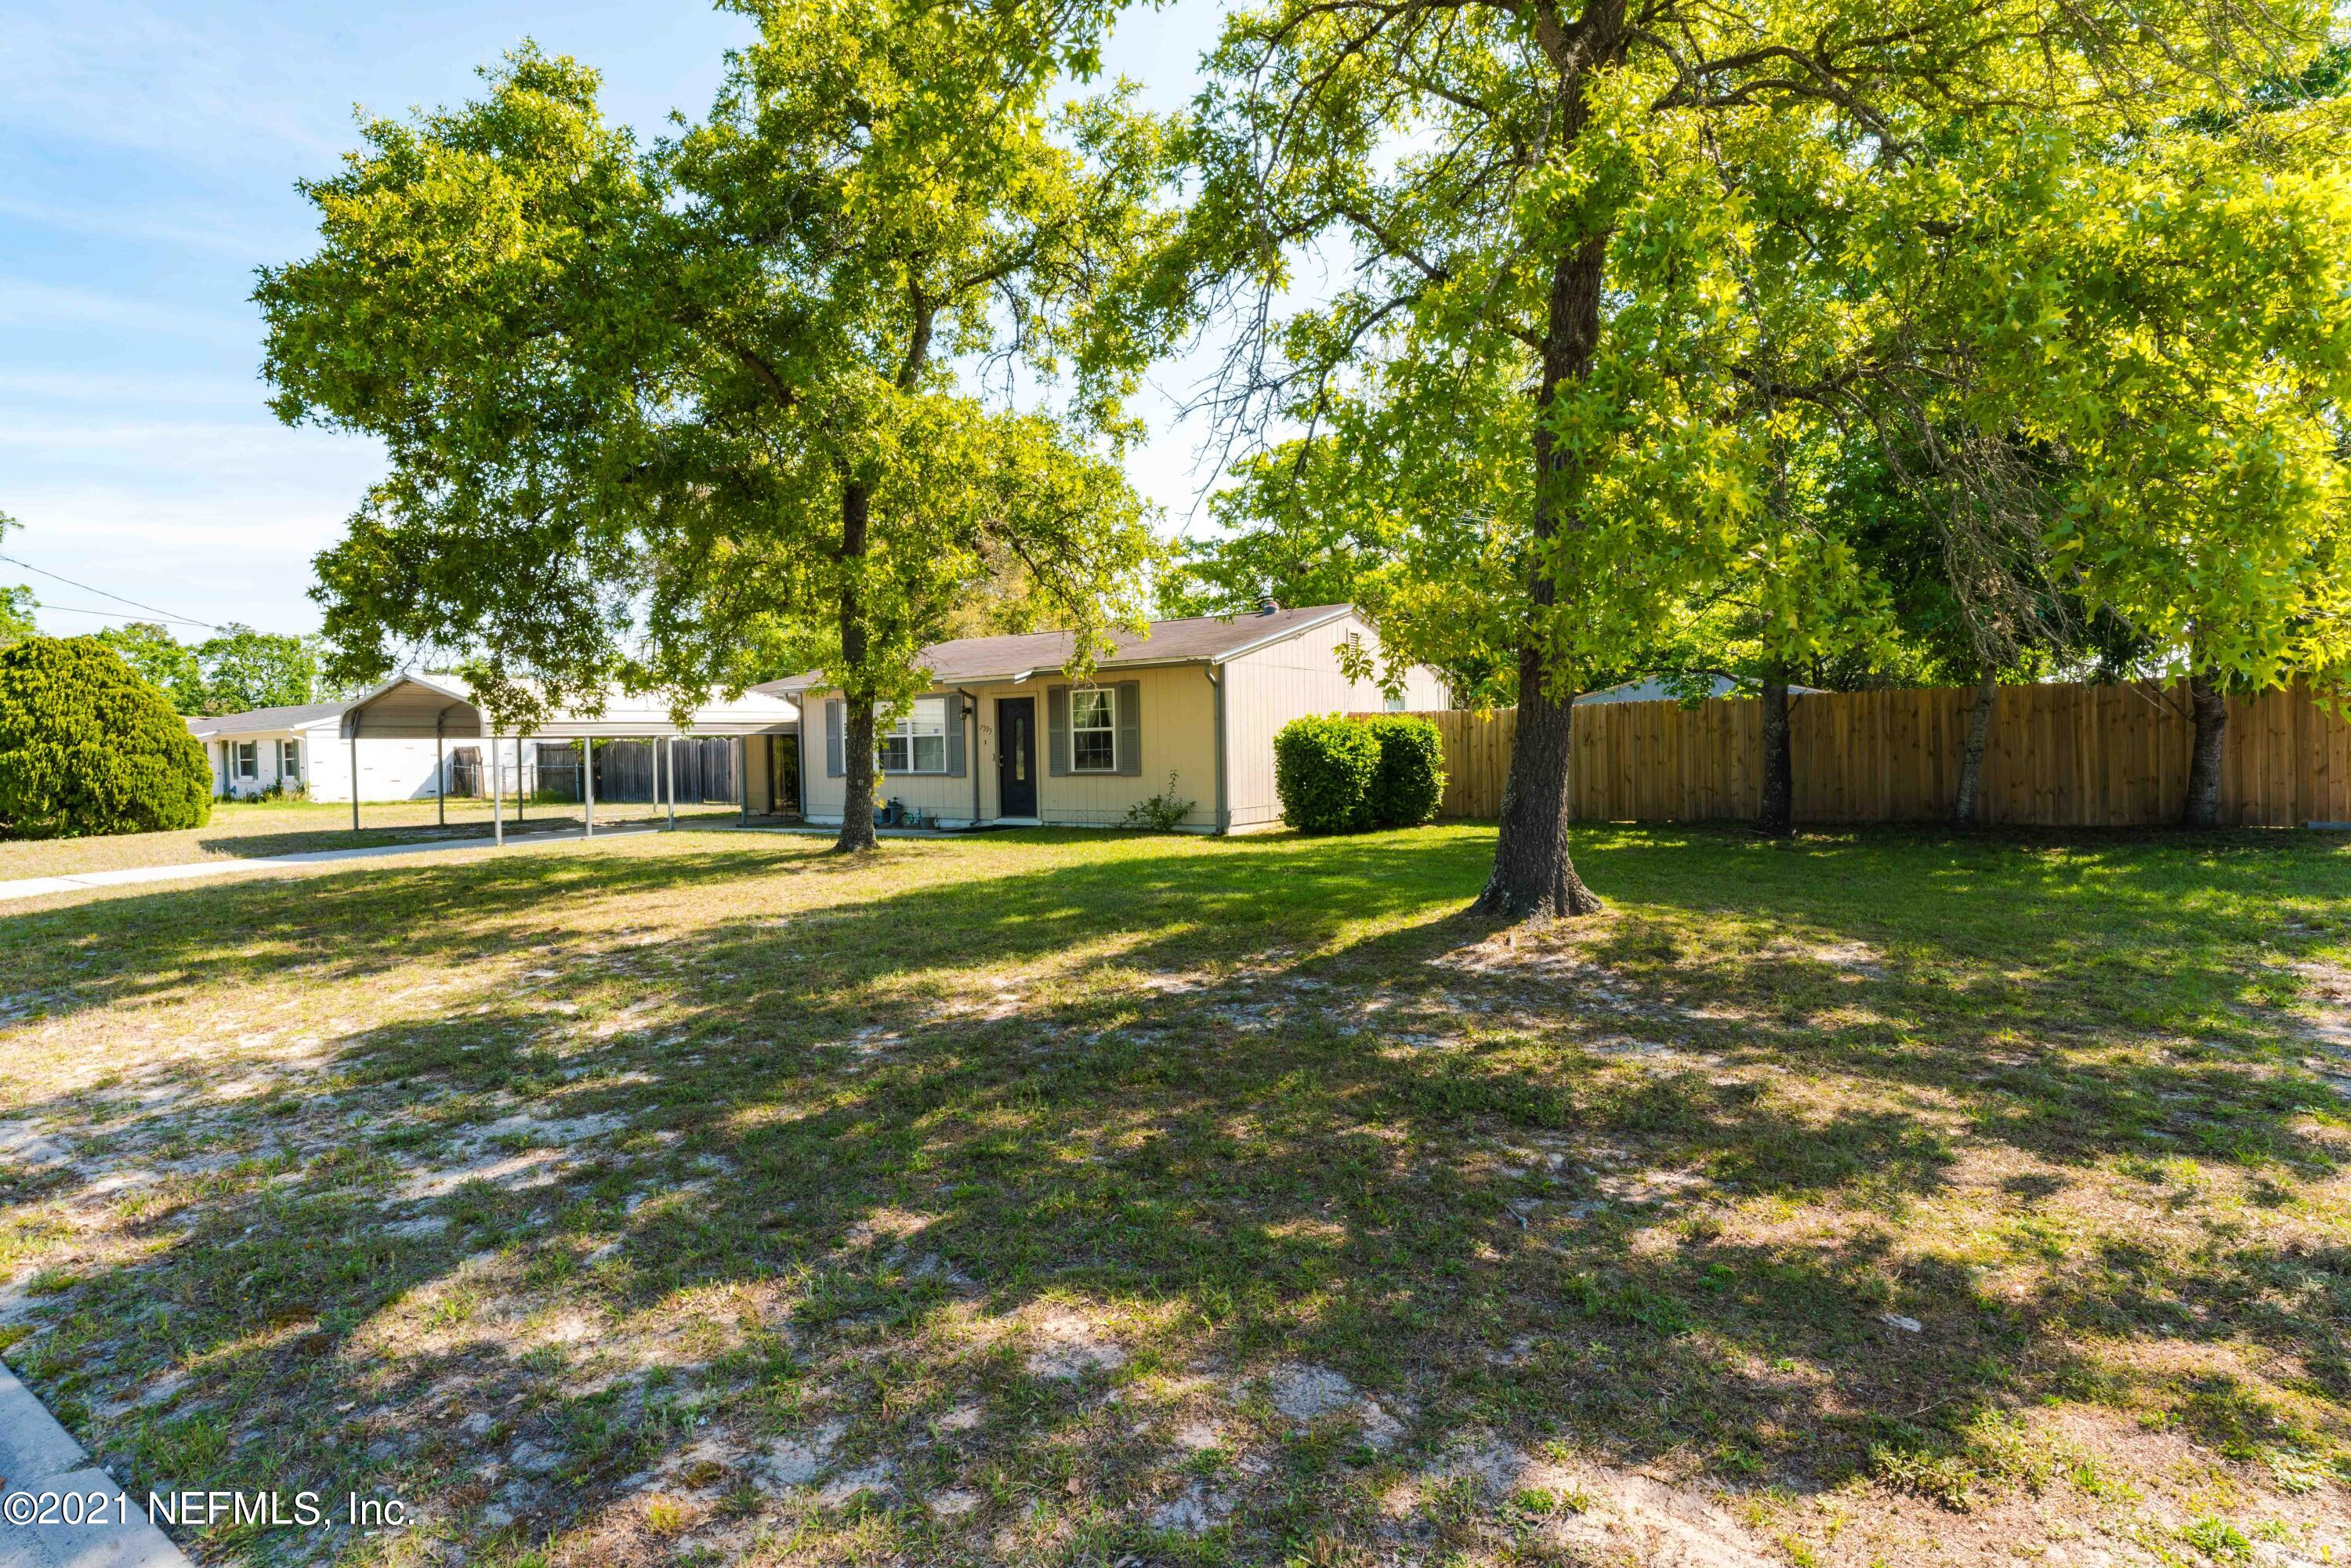 7593 COLLINS CT, JACKSONVILLE, Florida 32244, 2 Bedrooms Bedrooms, ,1 BathroomBathrooms,Single Family,For Sale,7593 COLLINS CT,1104082